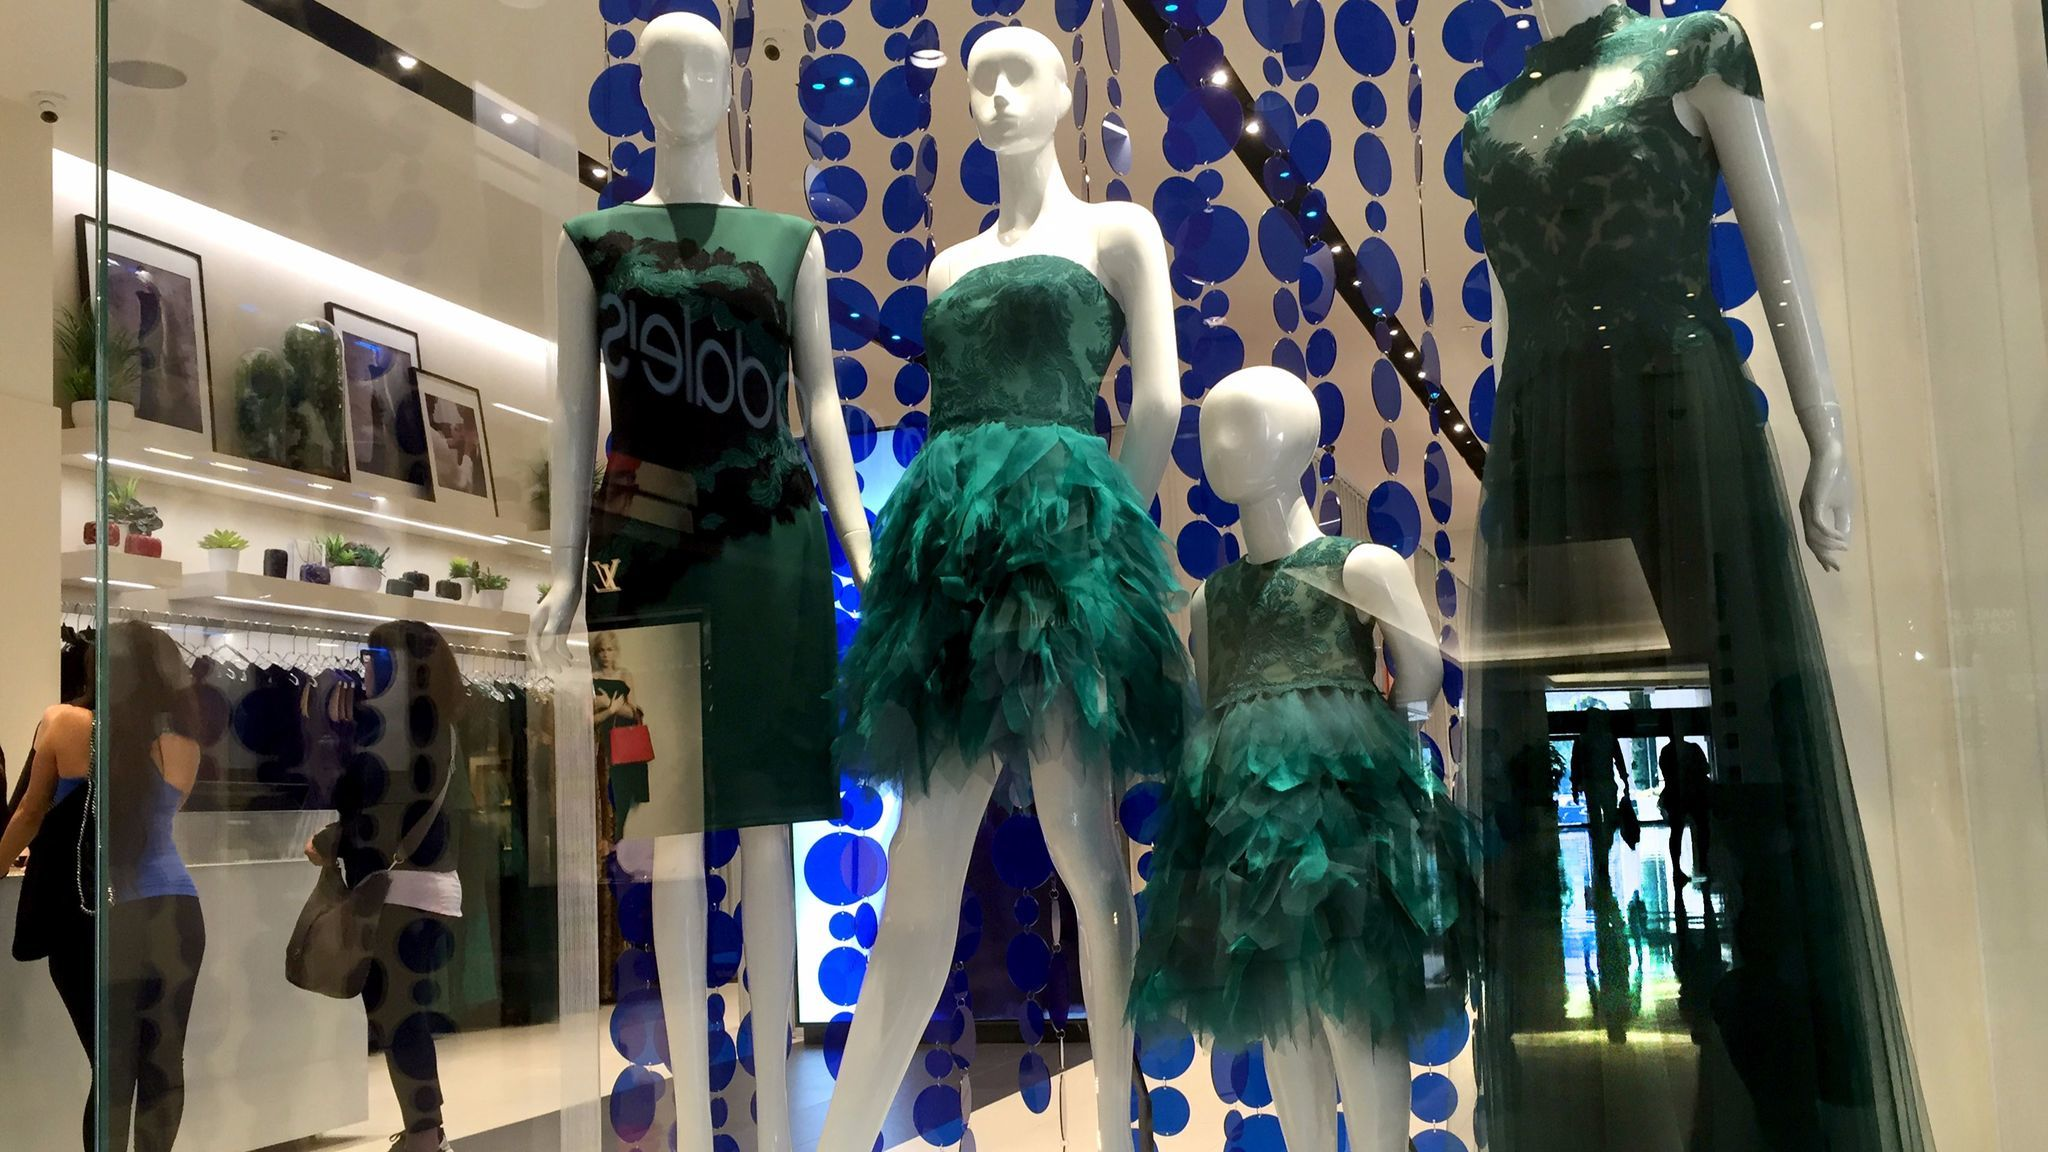 A 2015 file photo of the Tadashi Shoji at South Coast Plaza. The designer opened his first U.S. boutique here in 2004.